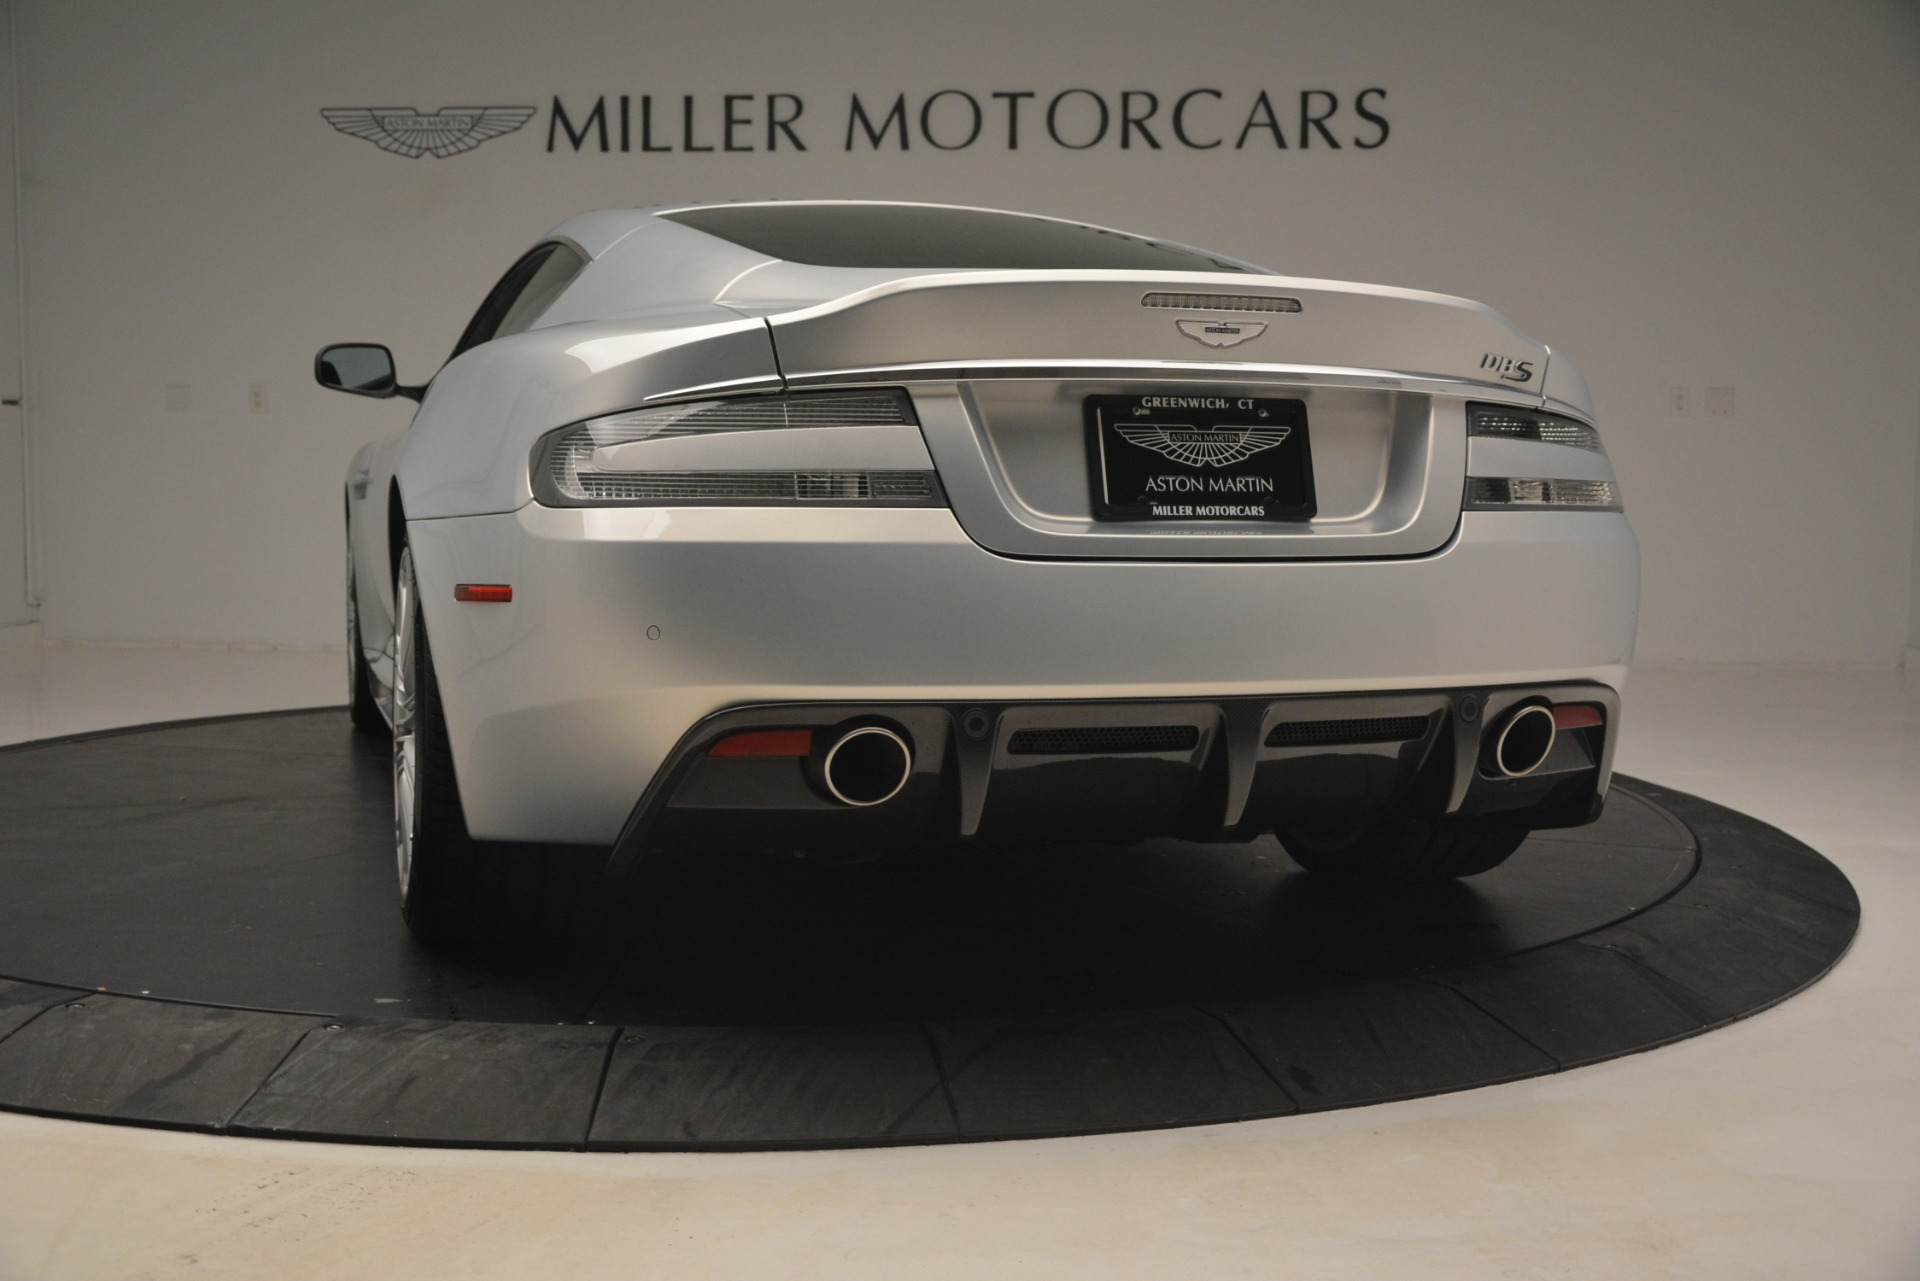 Used 2009 Aston Martin DBS Coupe For Sale In Greenwich, CT 3033_p15